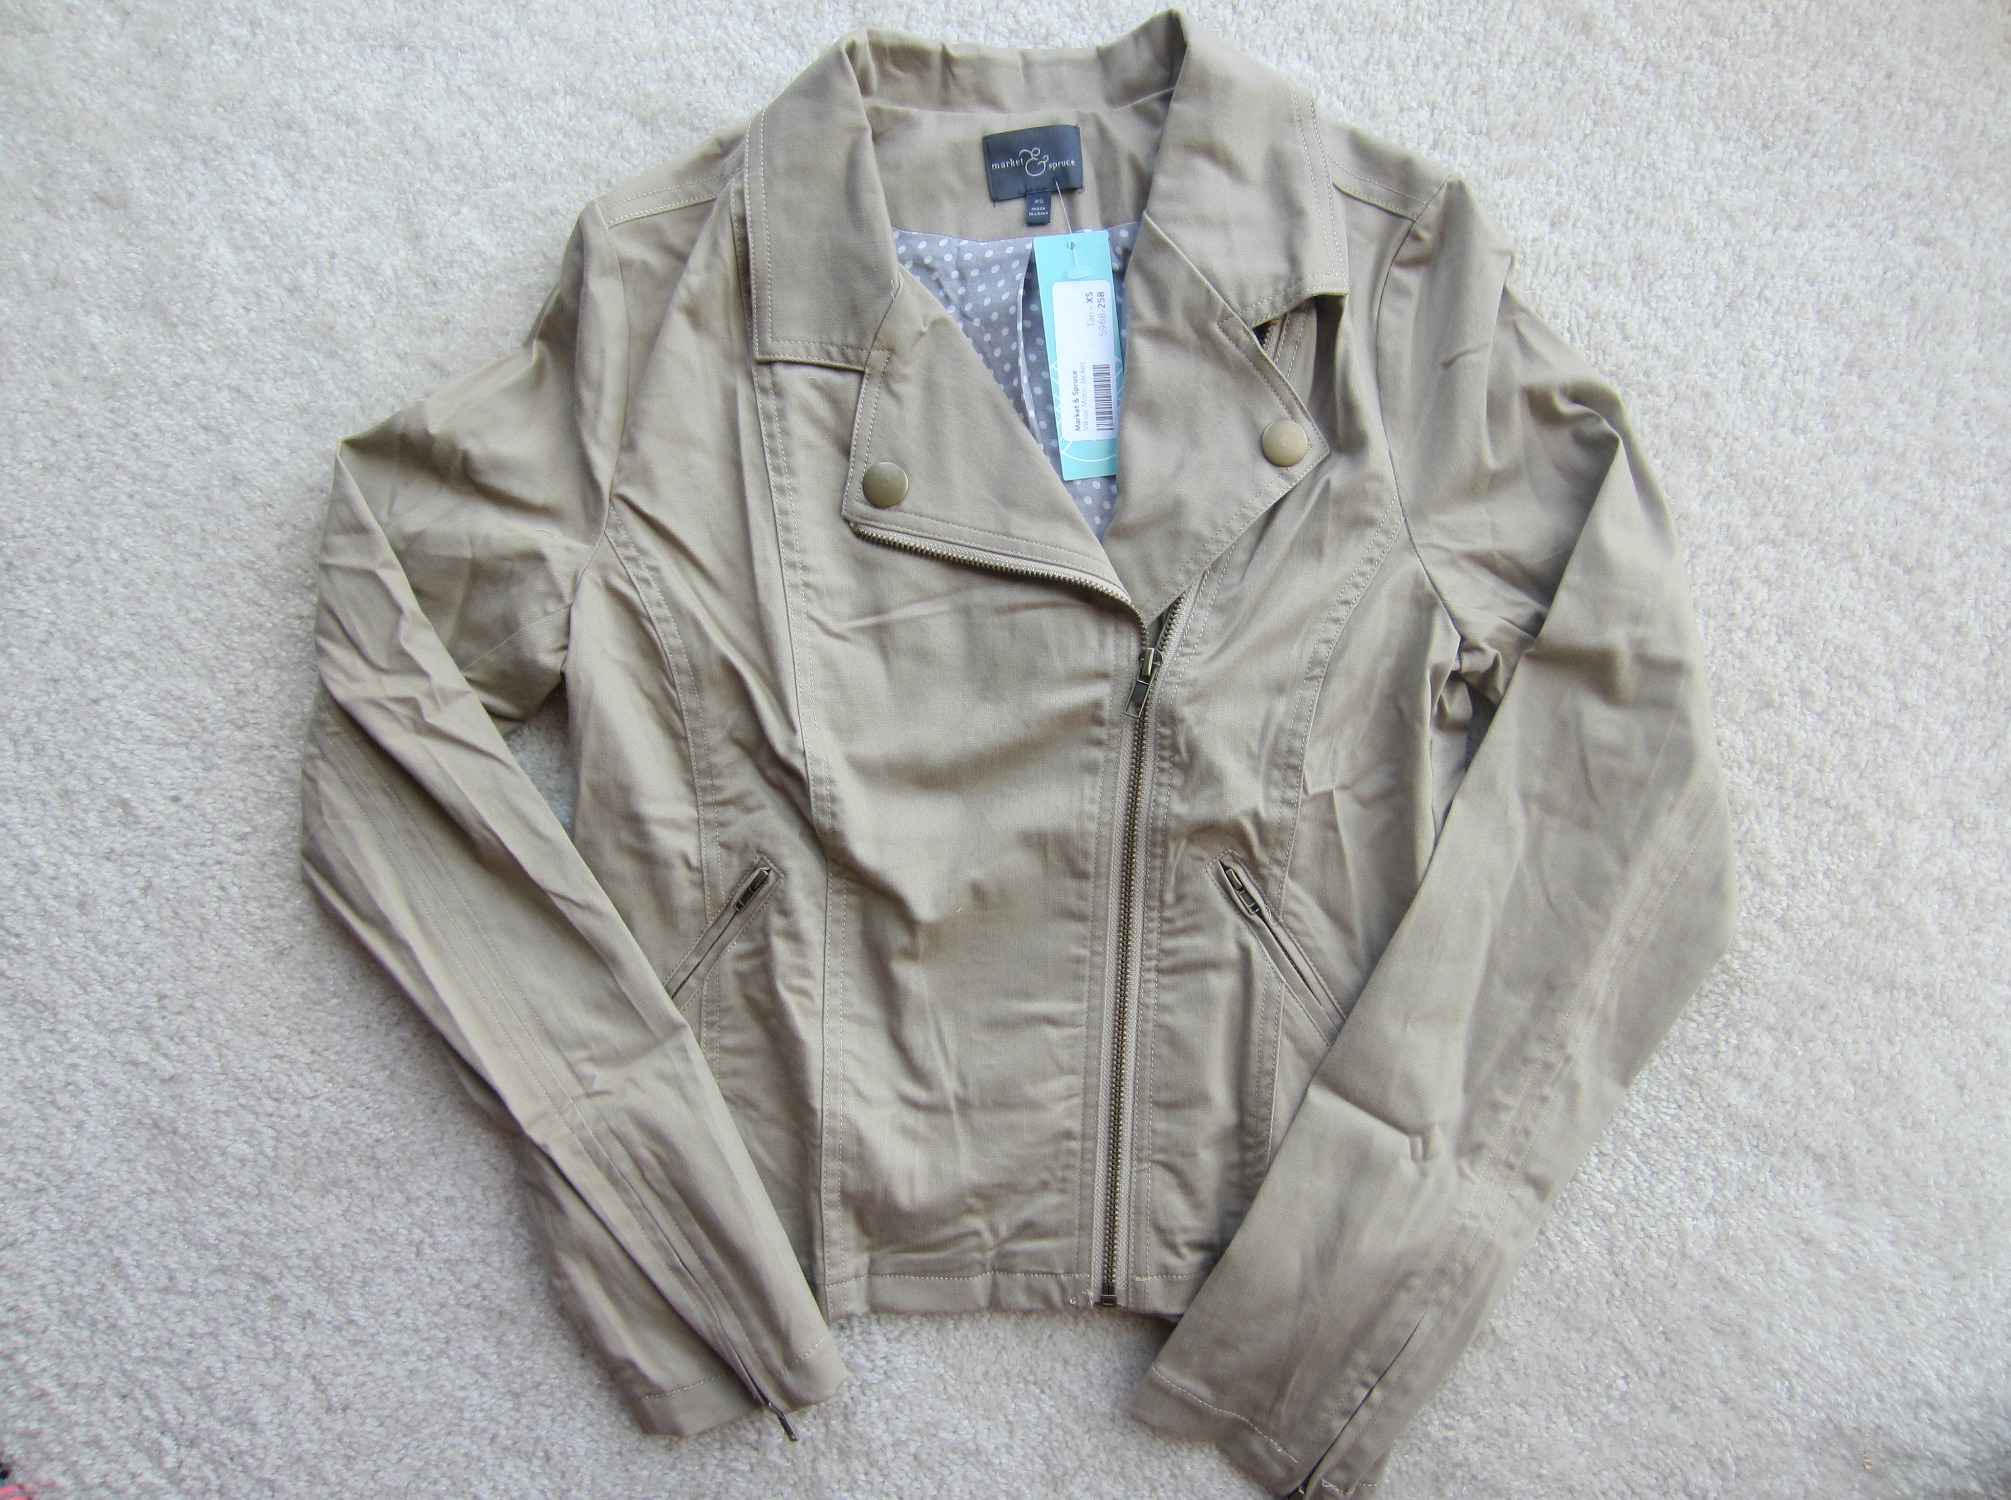 Market & Spruce Viktor Moto Jacket Stitch Fix